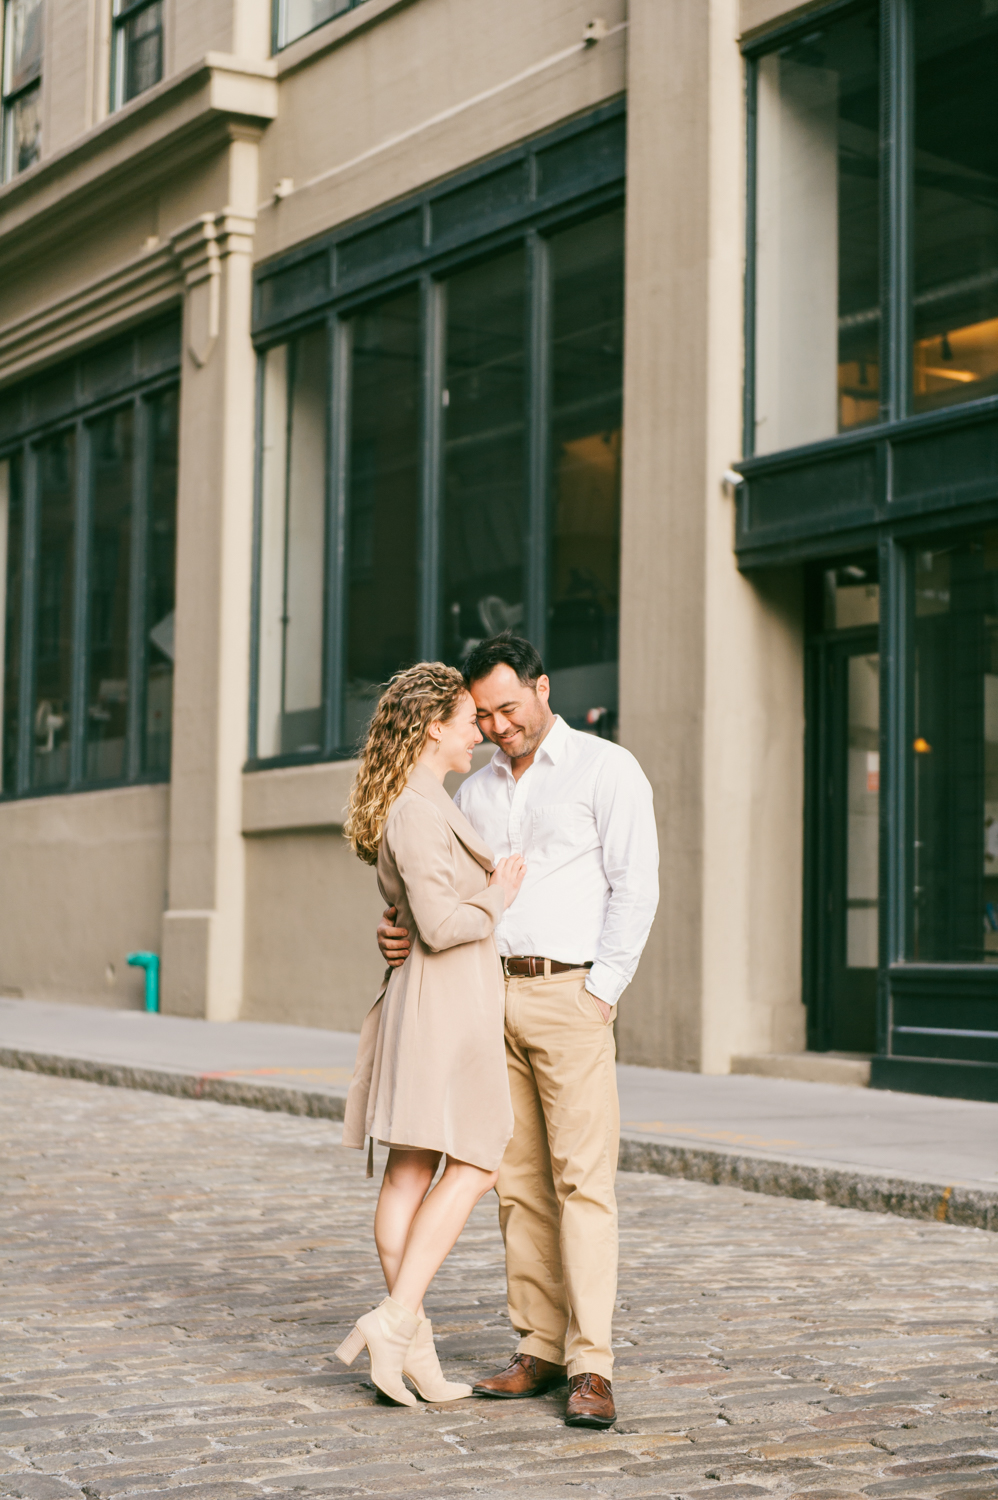 DUMBO.BrooklynBridge.Engagements.MK10.jpg